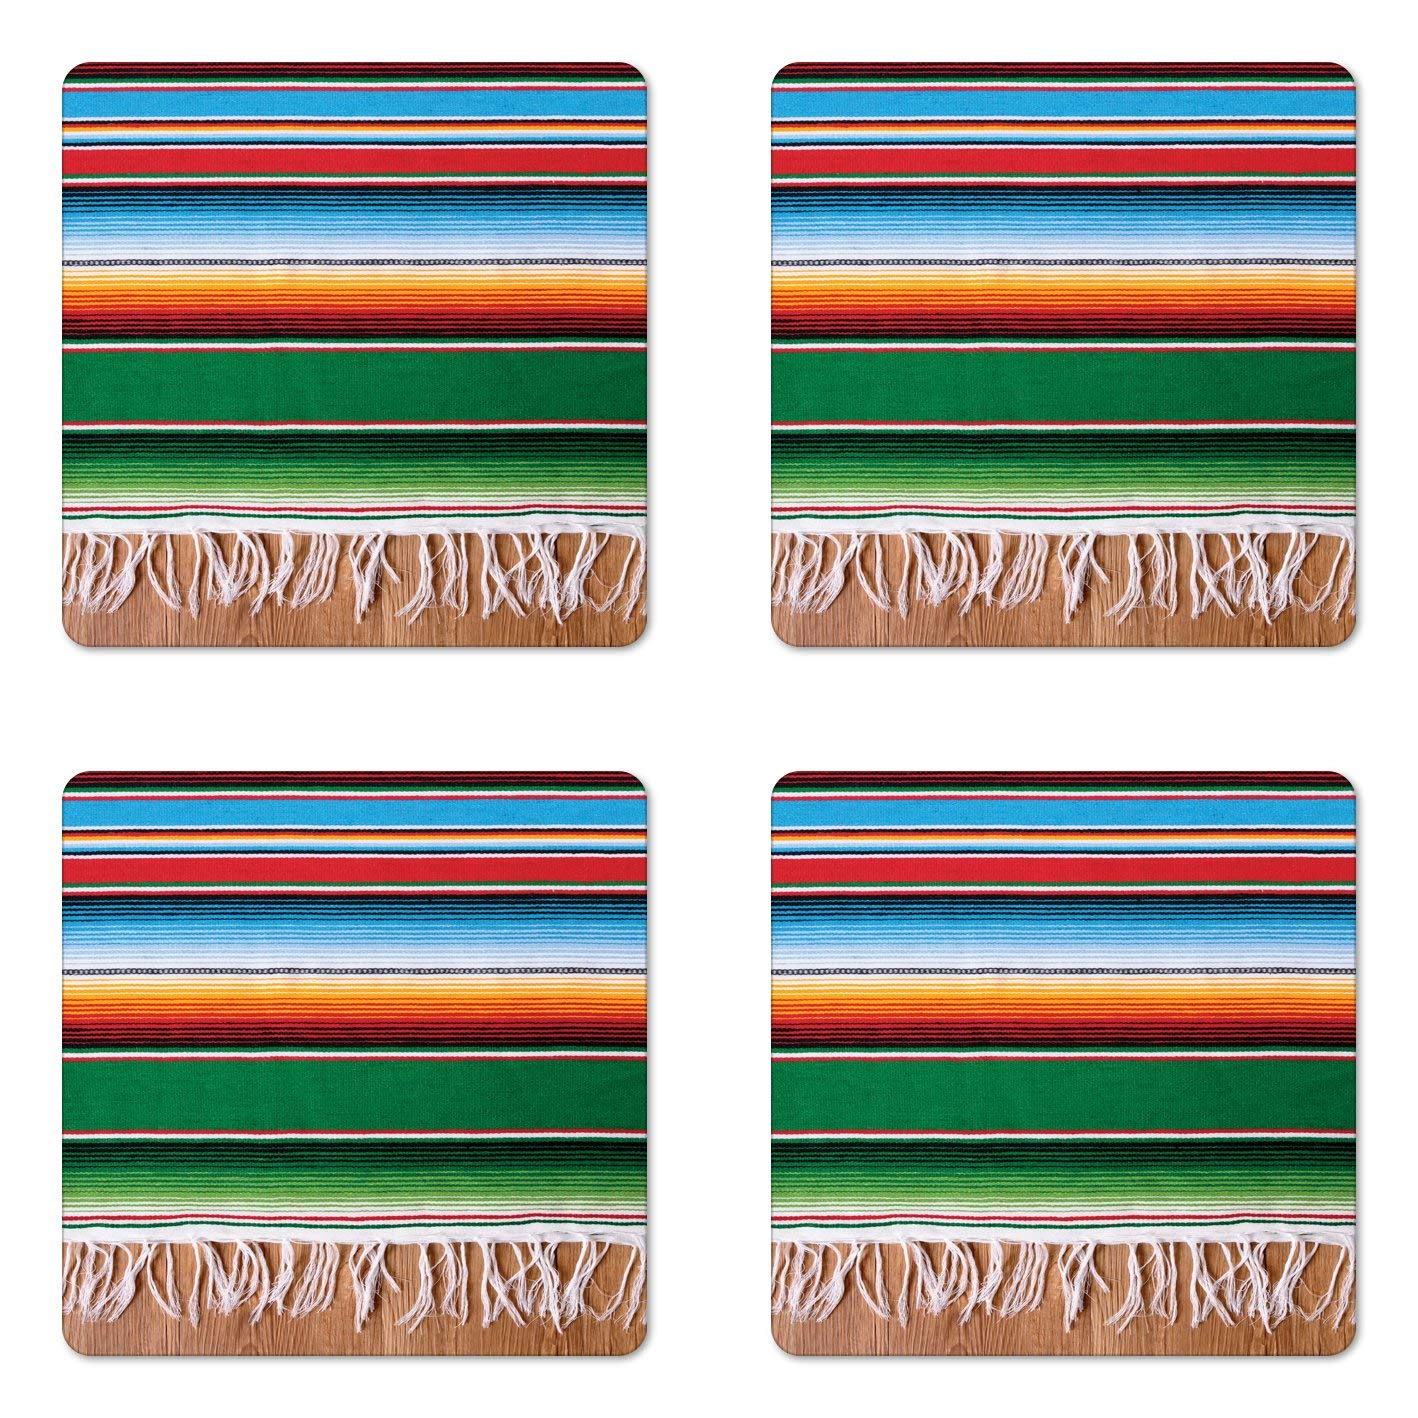 Lunarable Mexican Coaster Set of Four, Boho Serape Blanket with Horizontal Stripes and Lines Authentic Cultures Picture, Square Hardboard Gloss Coasters for Drinks, Multicolor